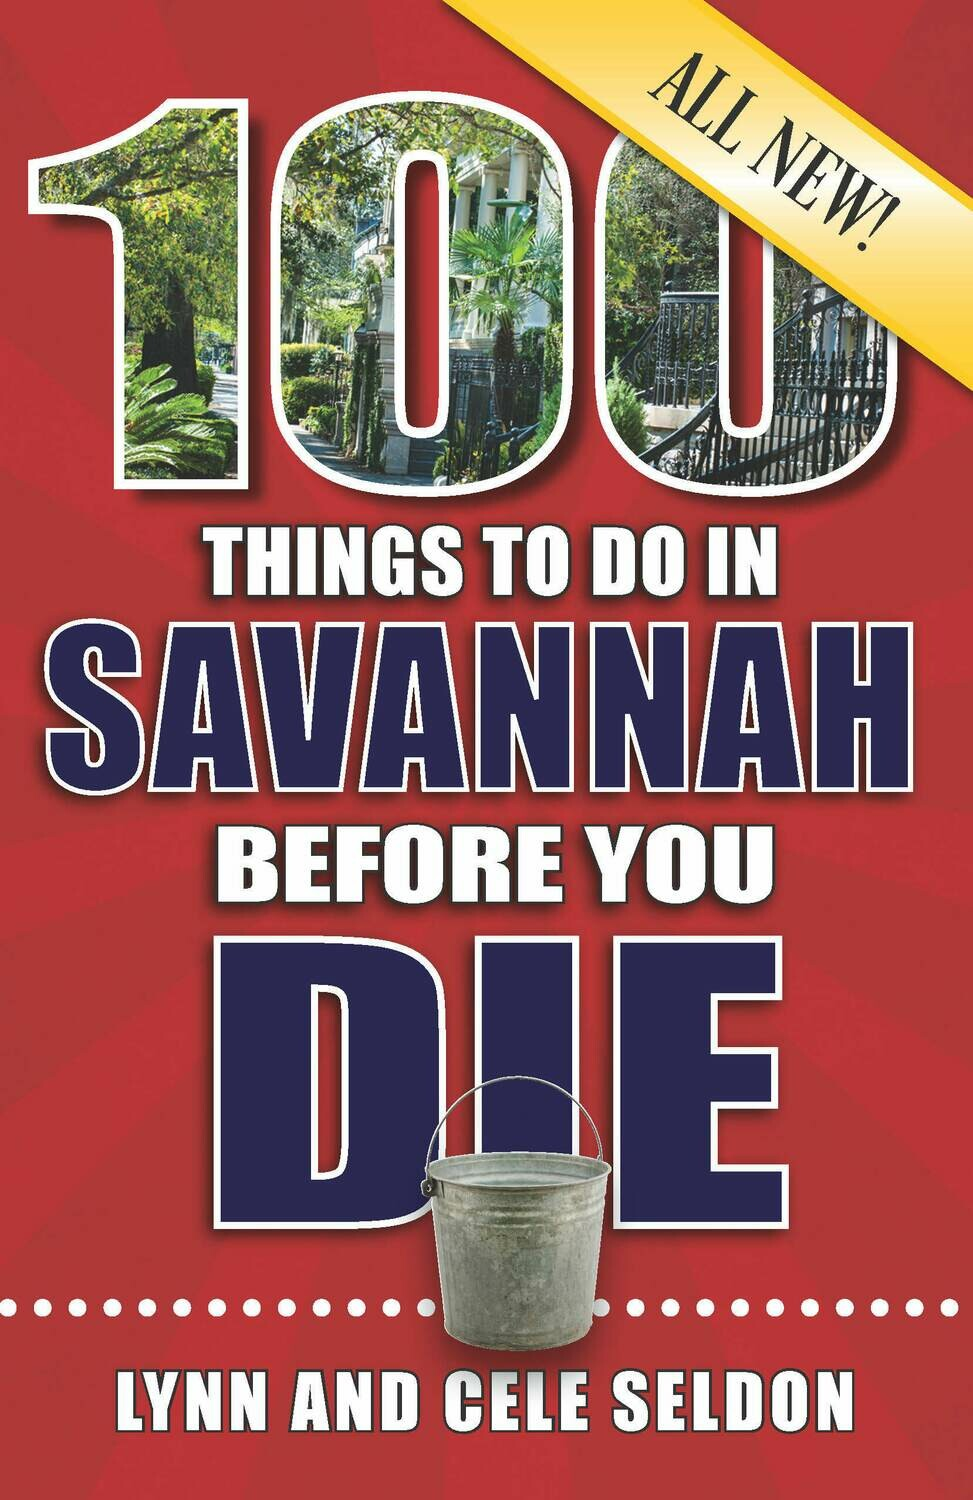 100 THINGS TO DO IN SAVANNAH BEFORE YOU DIE